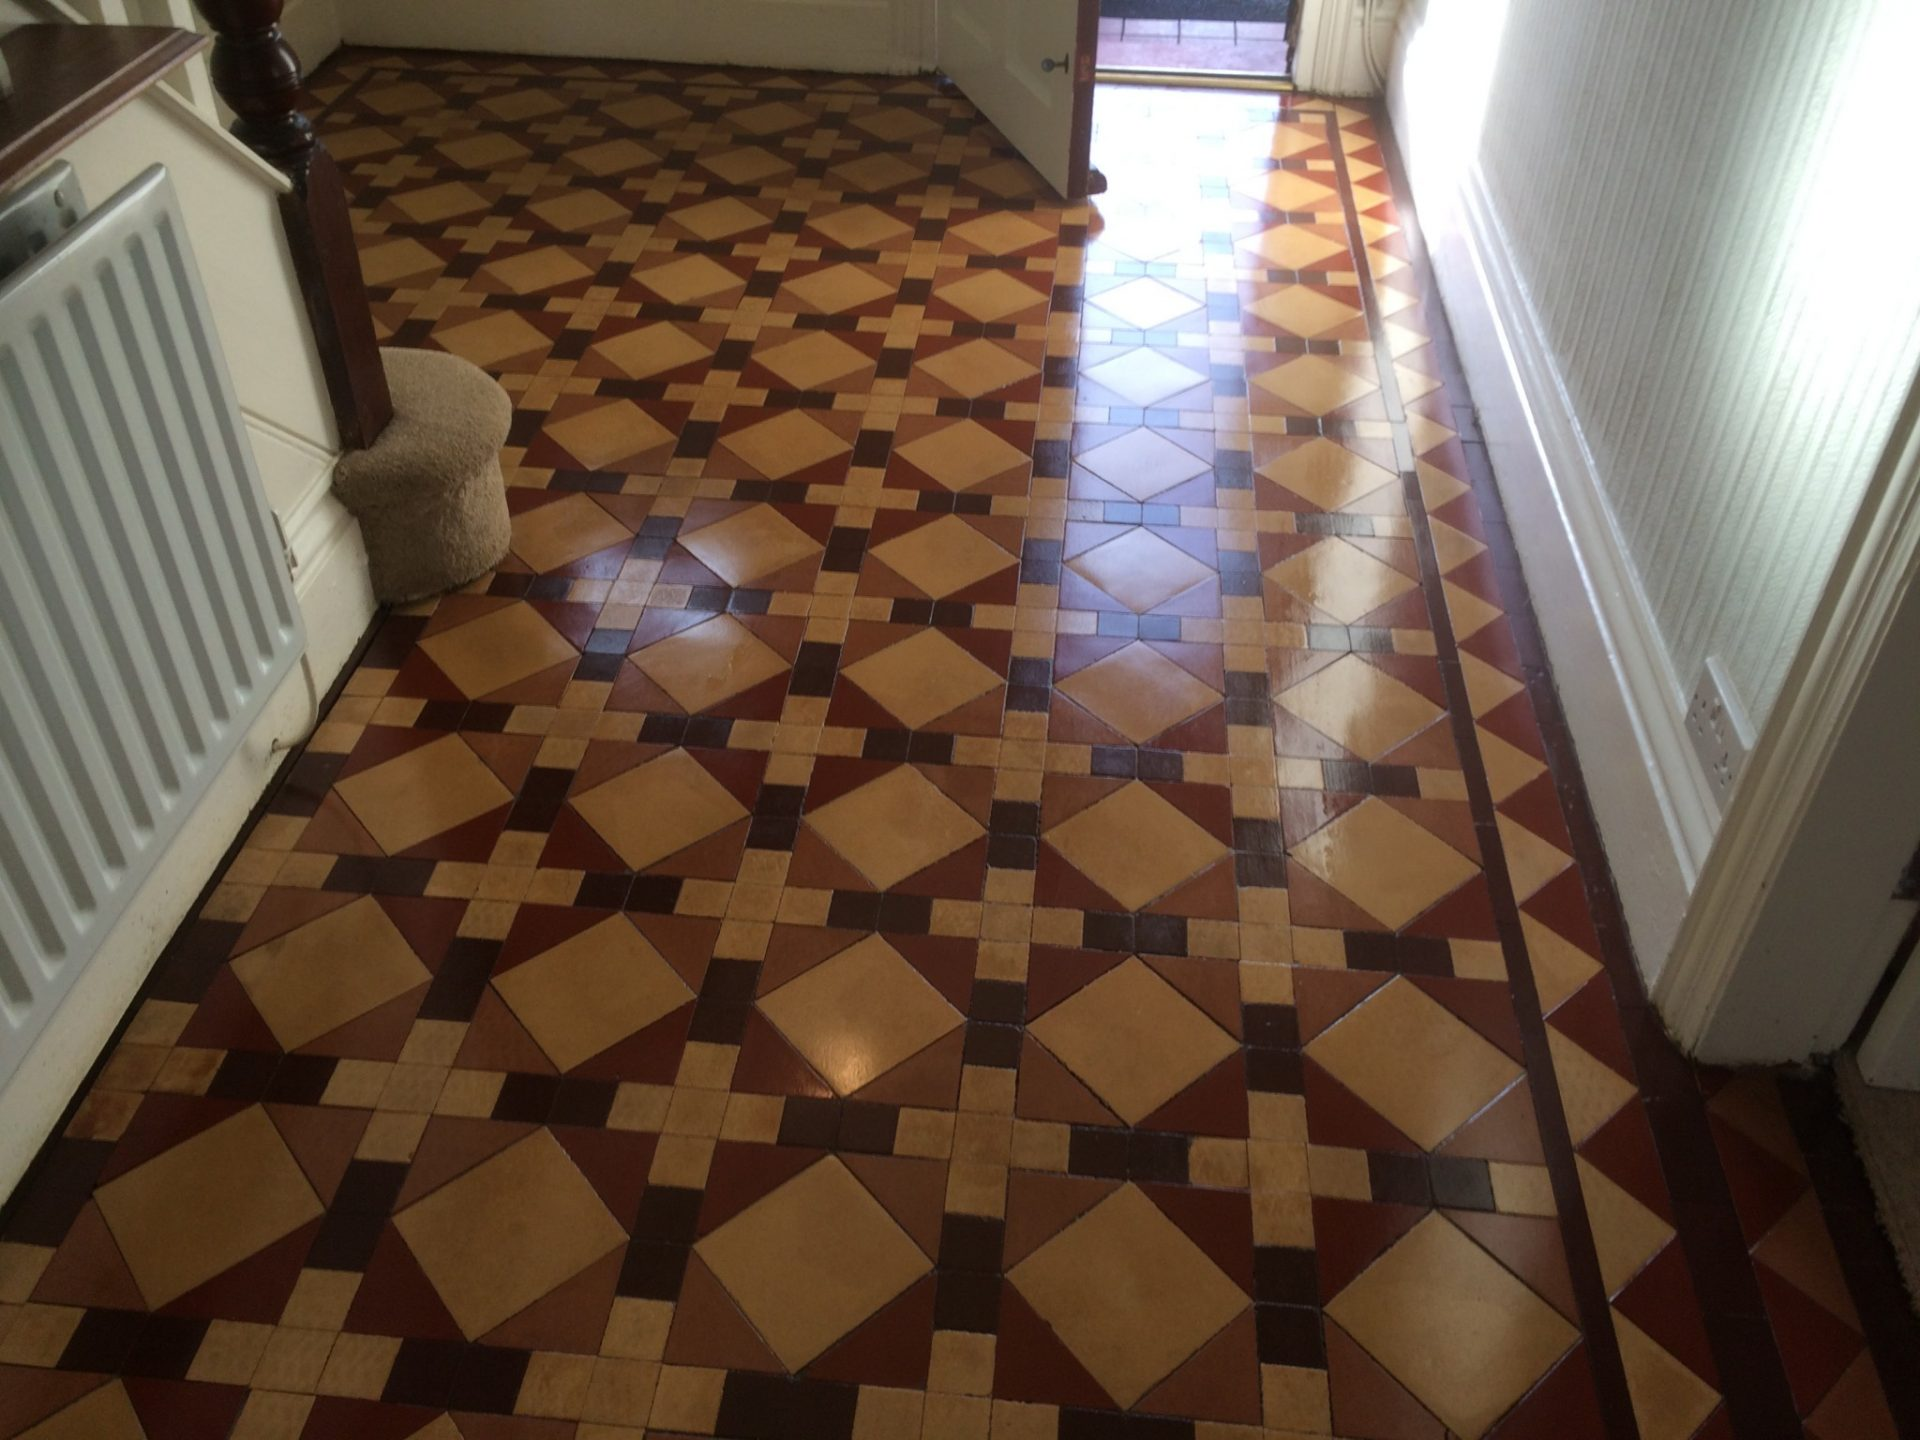 Victorian Minton Floor Tile Cleaning Stripping Sealing Polishing